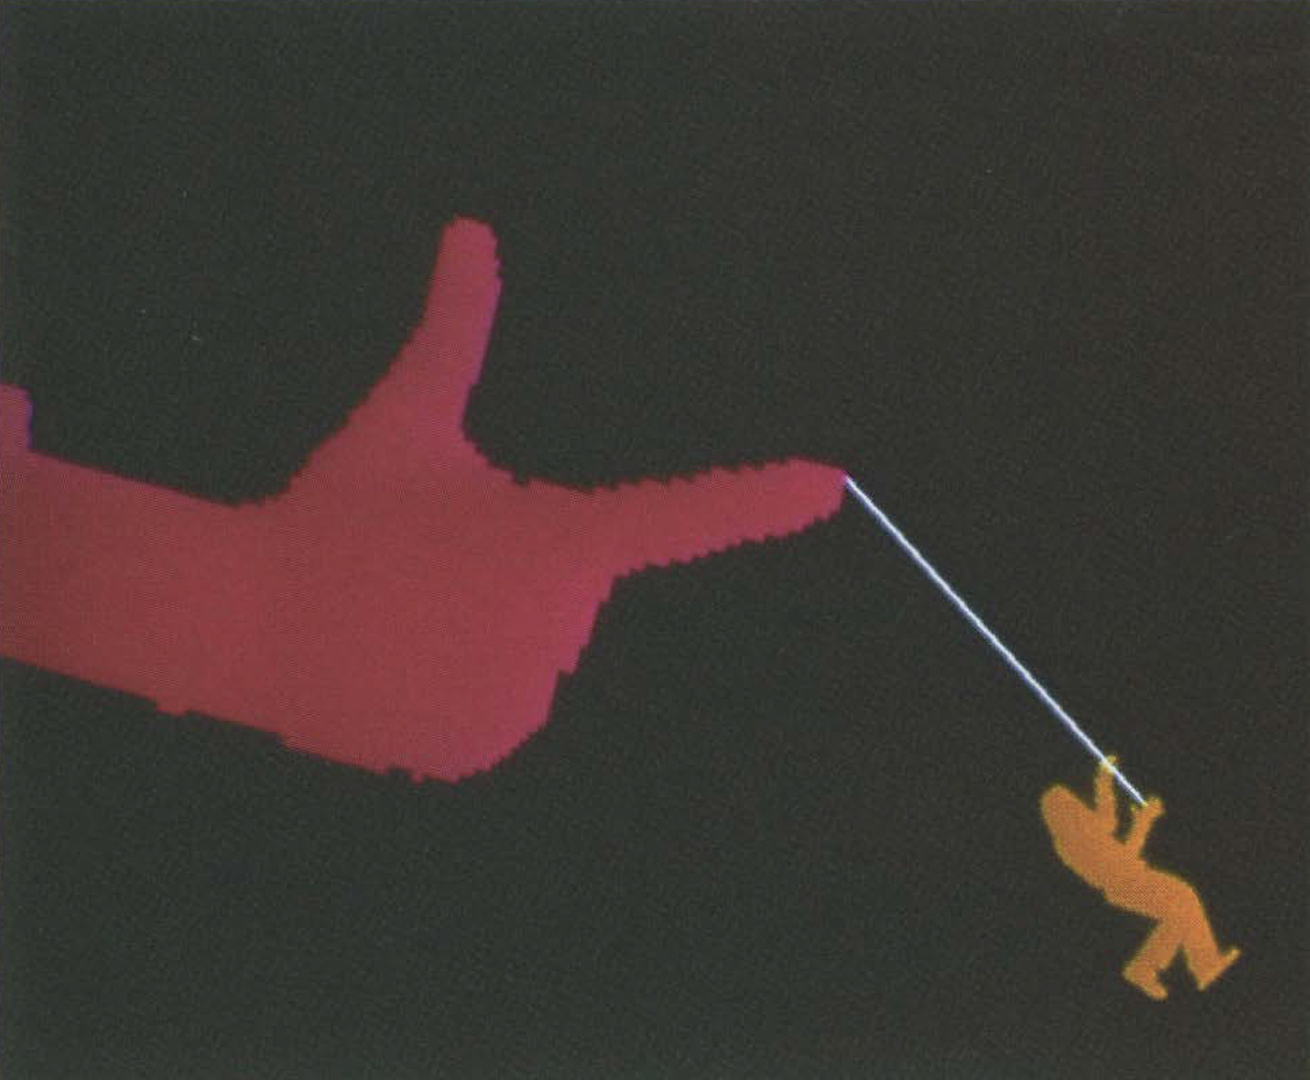 ©1988, Myron W. Krueger, Hanging by a Thread